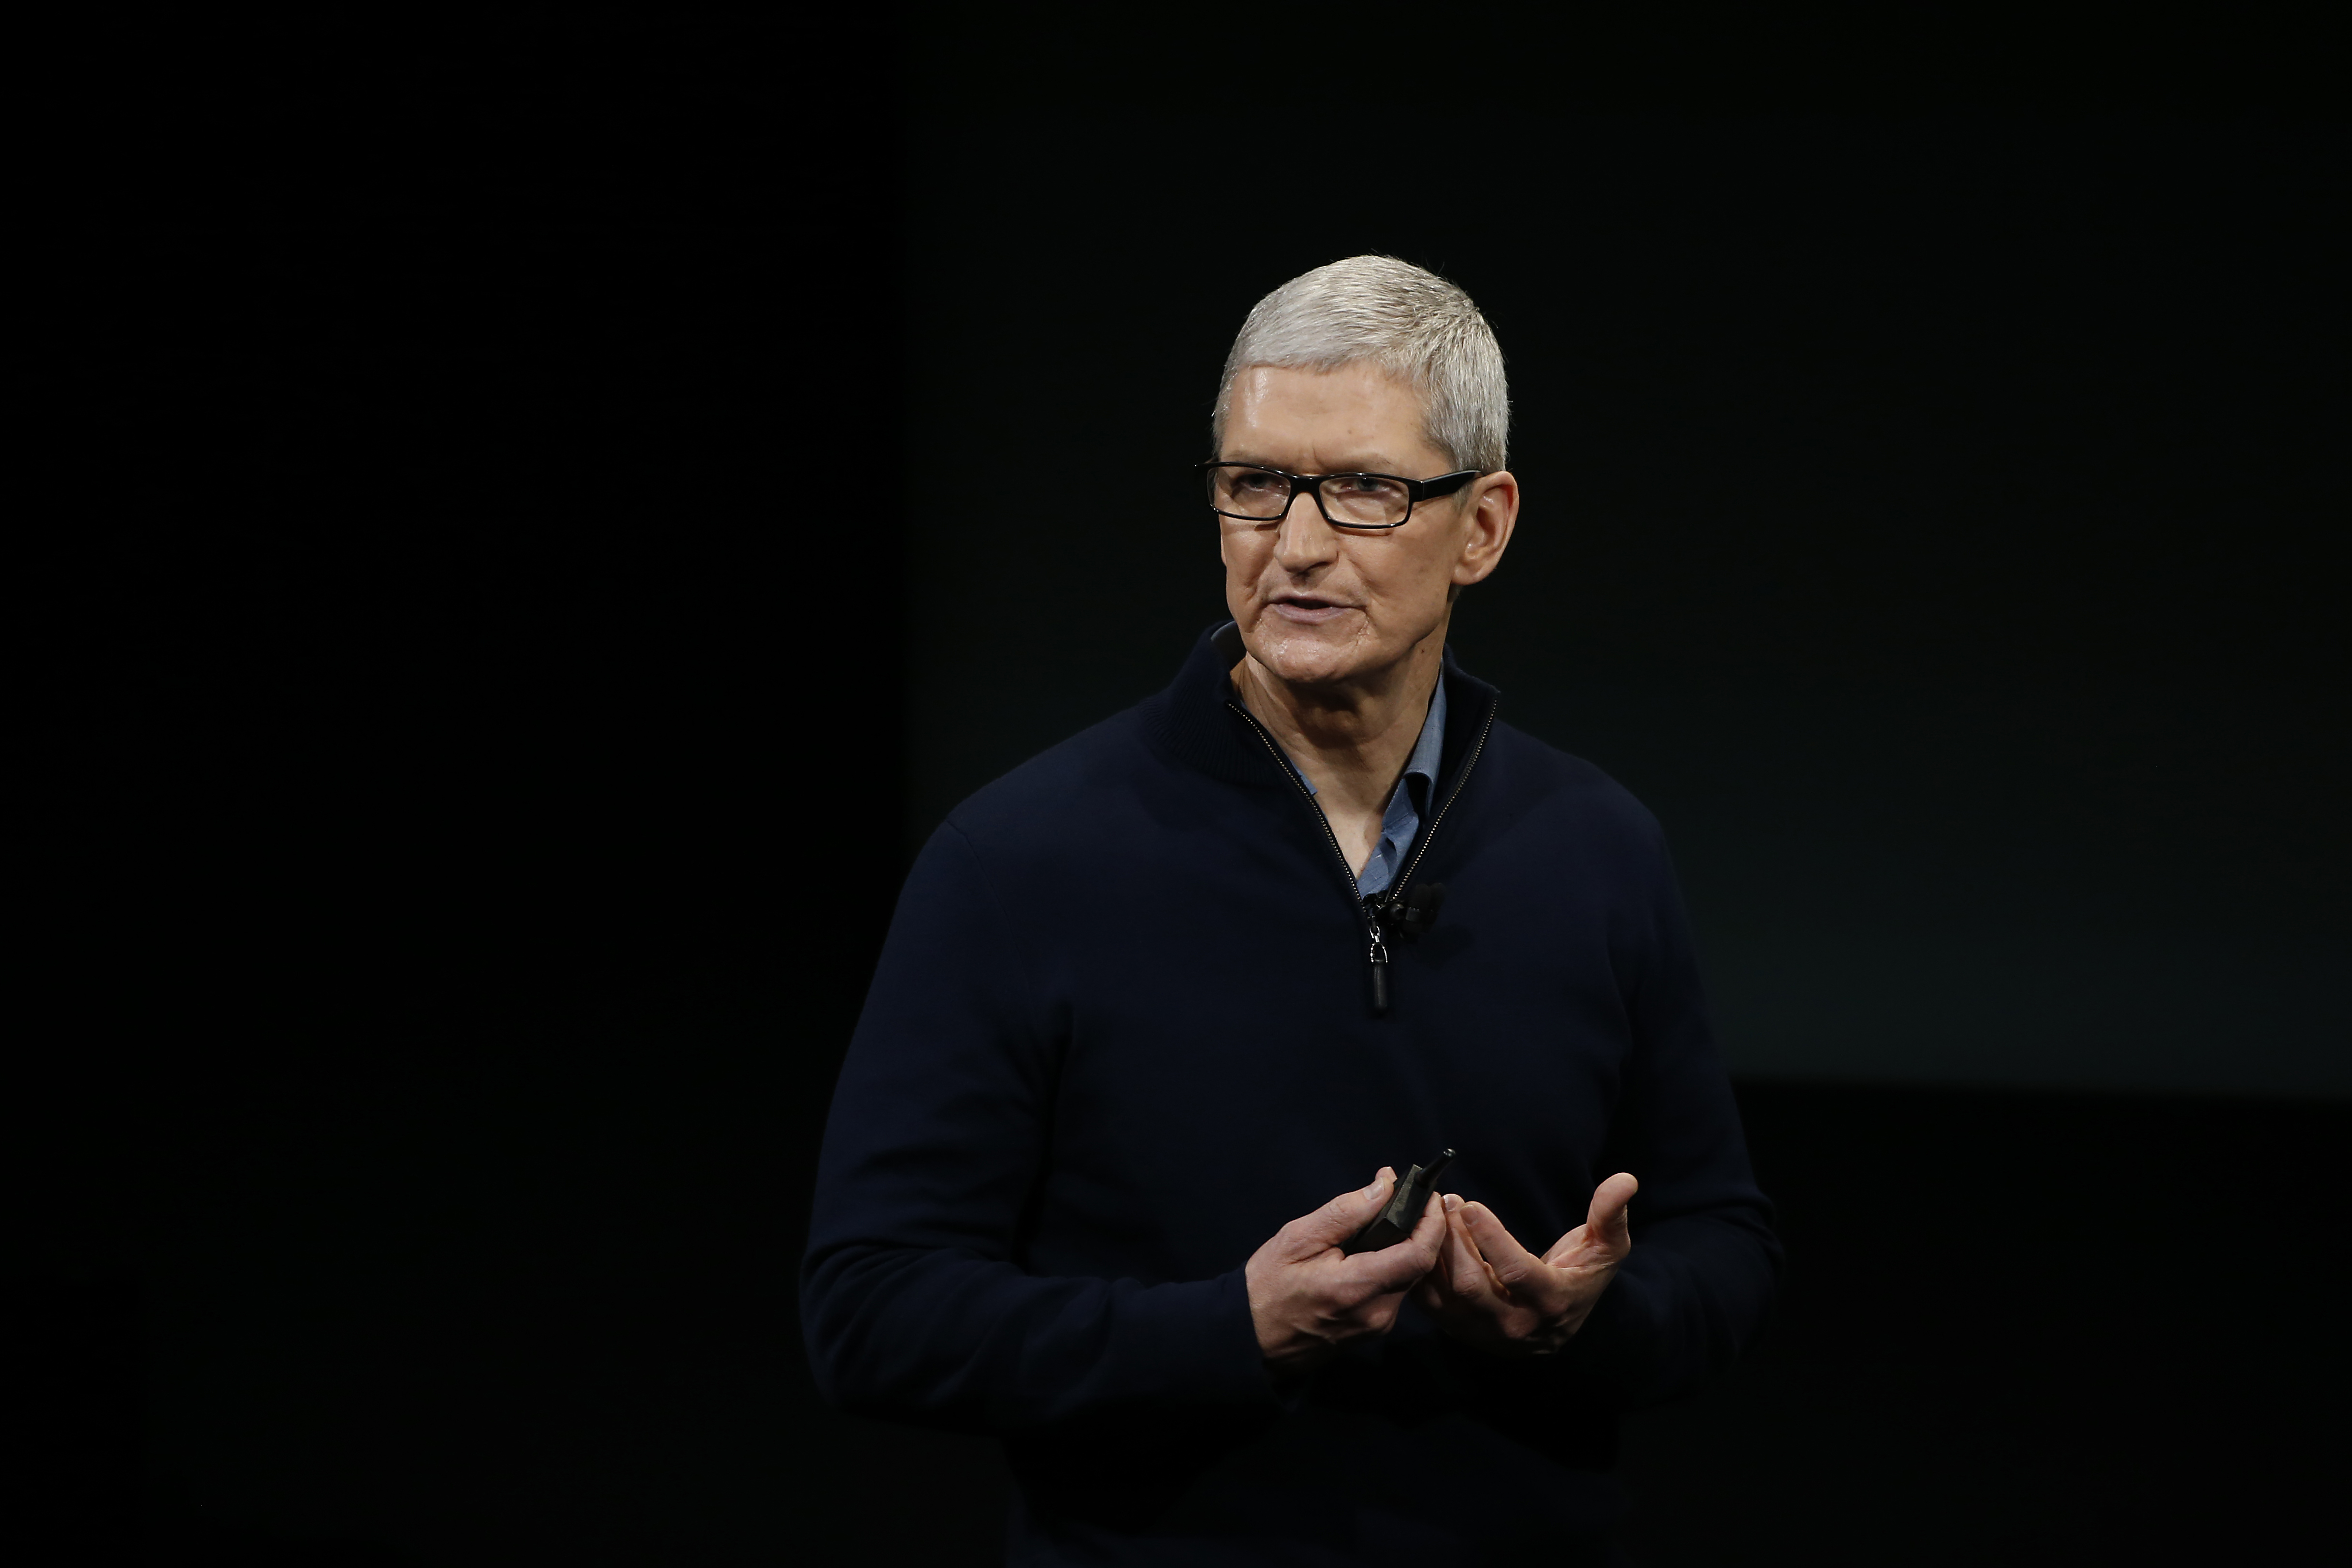 Cook has been CEO of Apple for the past five years.